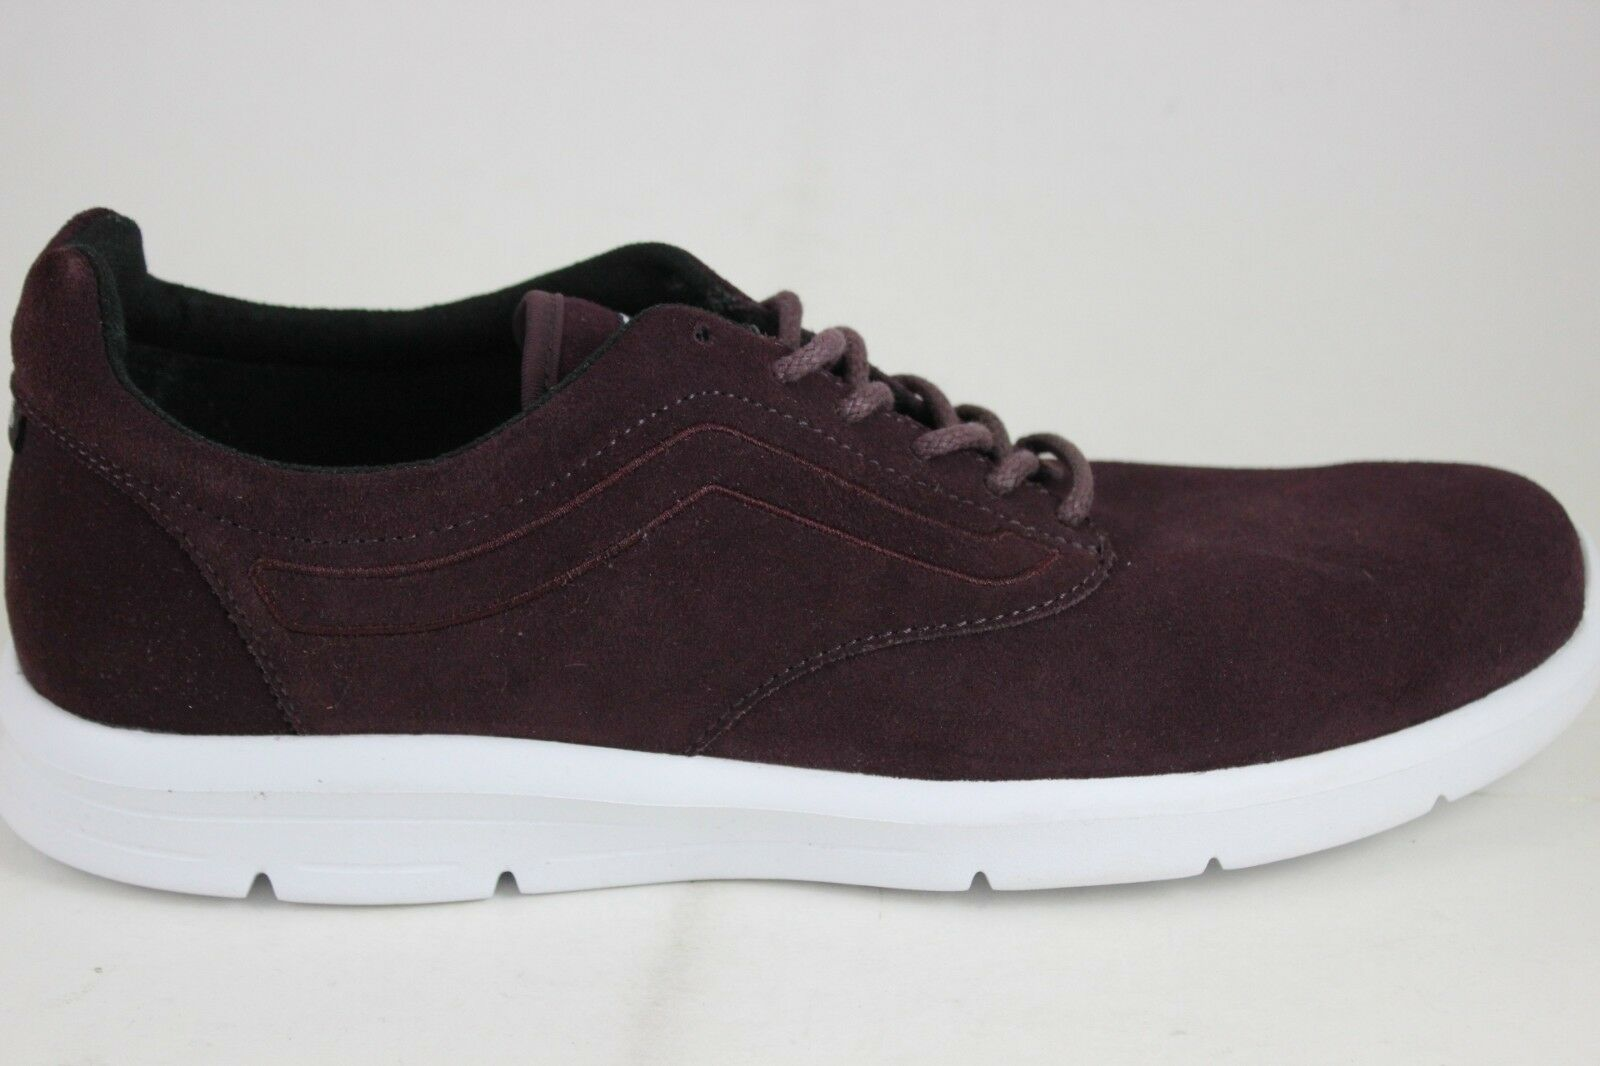 Vans Iso 1.5 Suede Iron Brown True White VN0A2Z5SM45 Brand New In Box